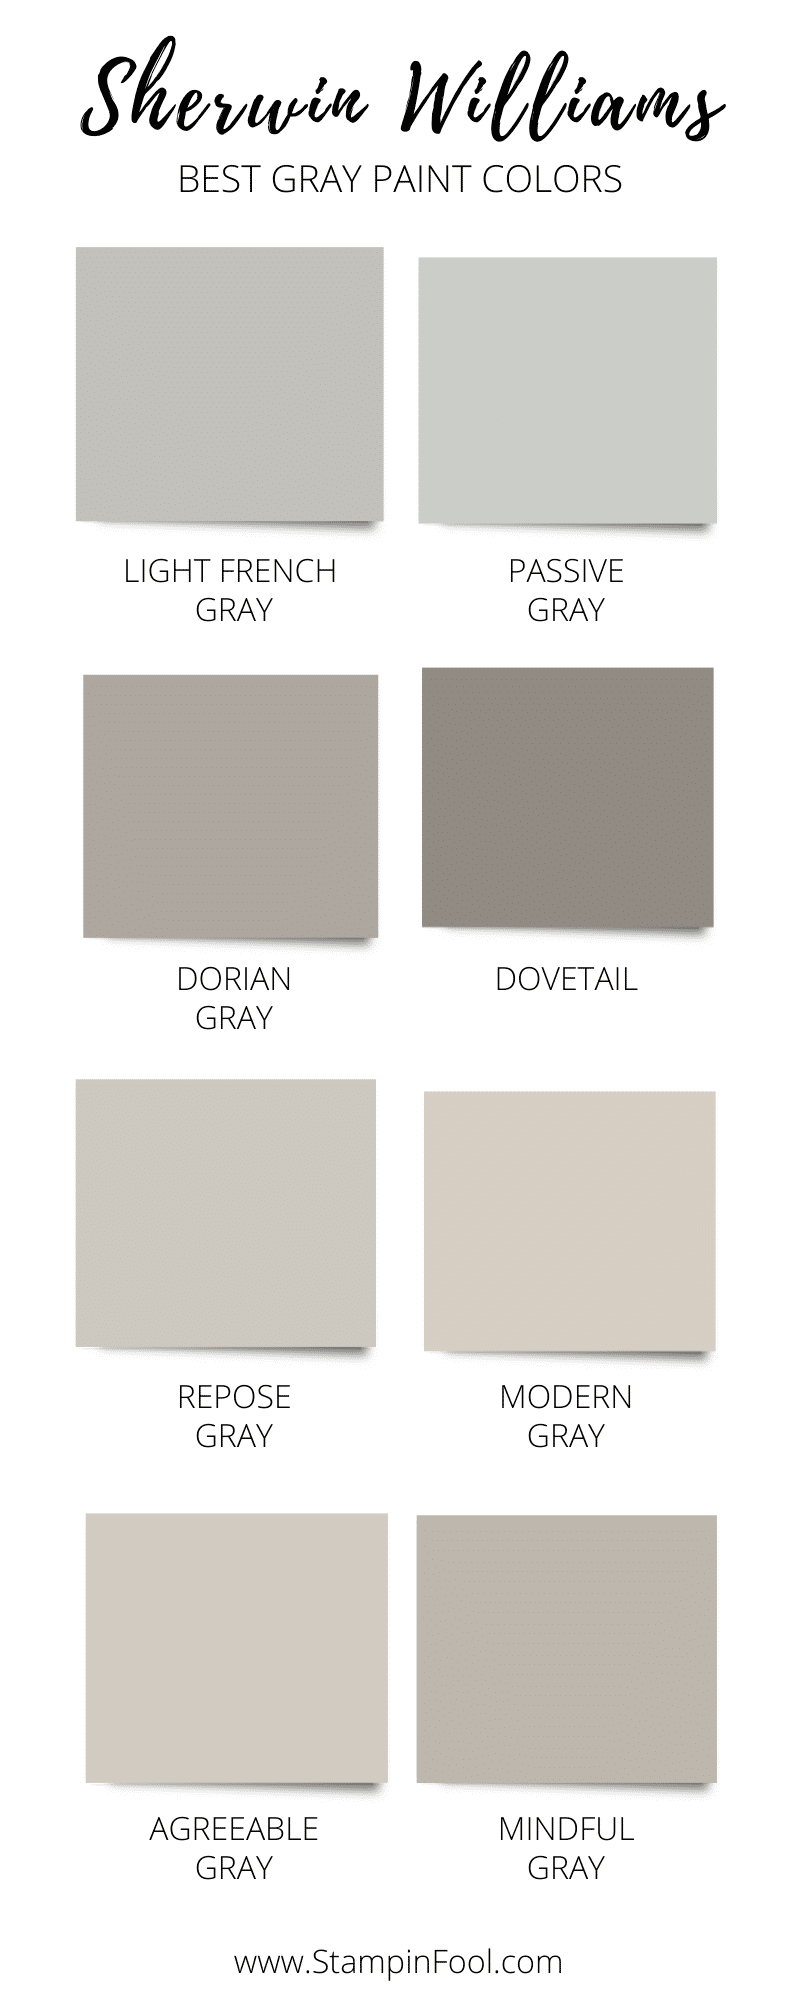 The Best Sherwin Williams Gray Paint Colors in 2020